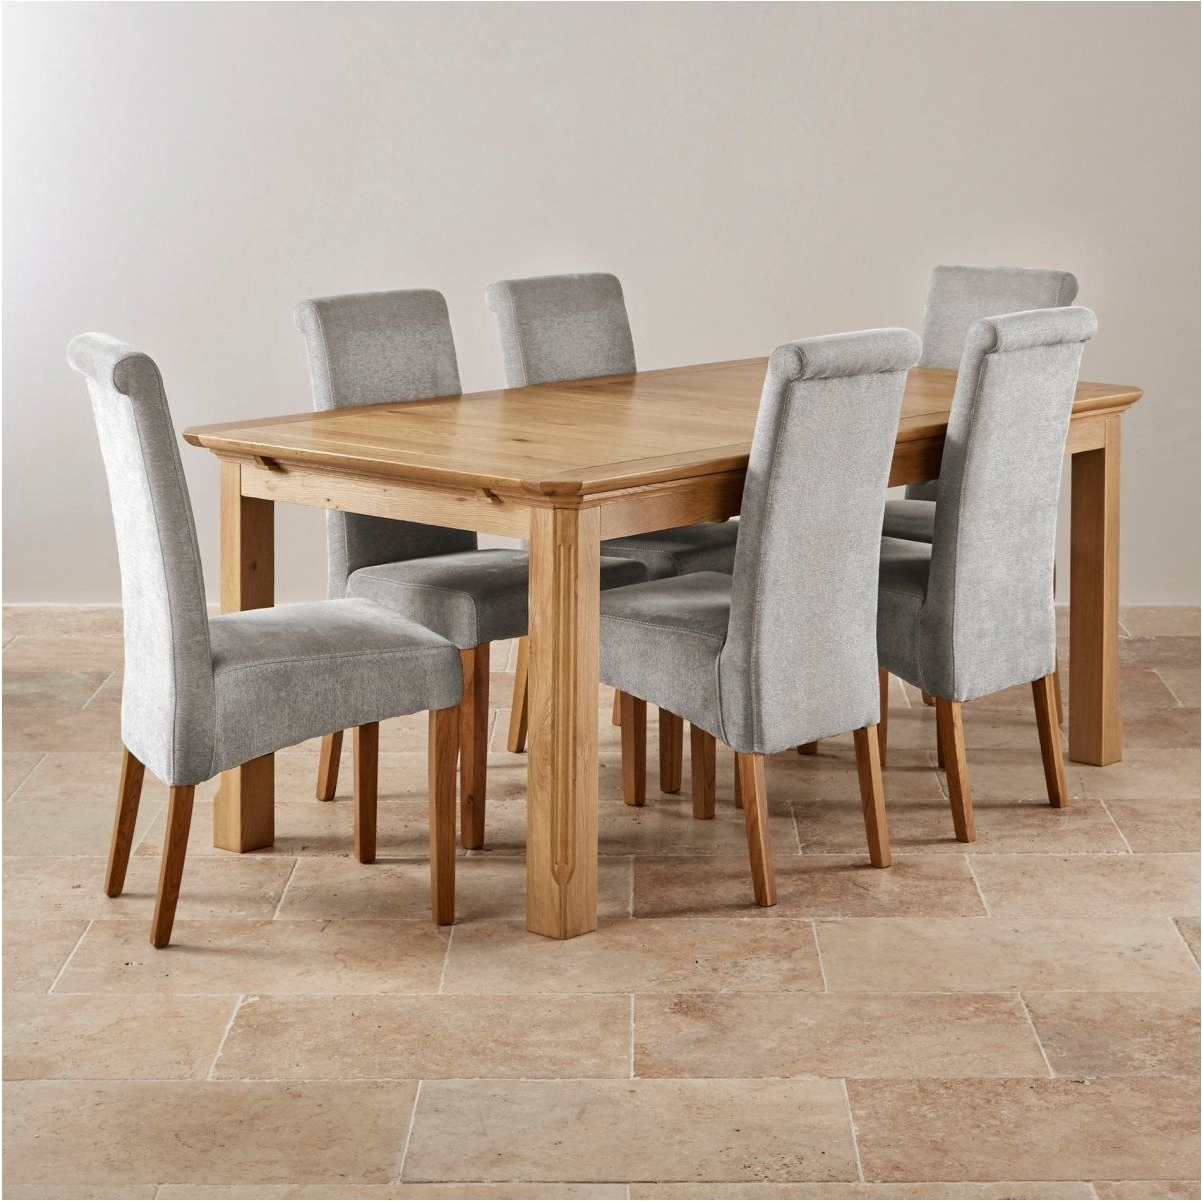 Oak Dining Tables With 6 Chairs In Popular Best Solid Oak Dining Table And 6 Chairs Solid Oak Dining Table And (View 14 of 25)